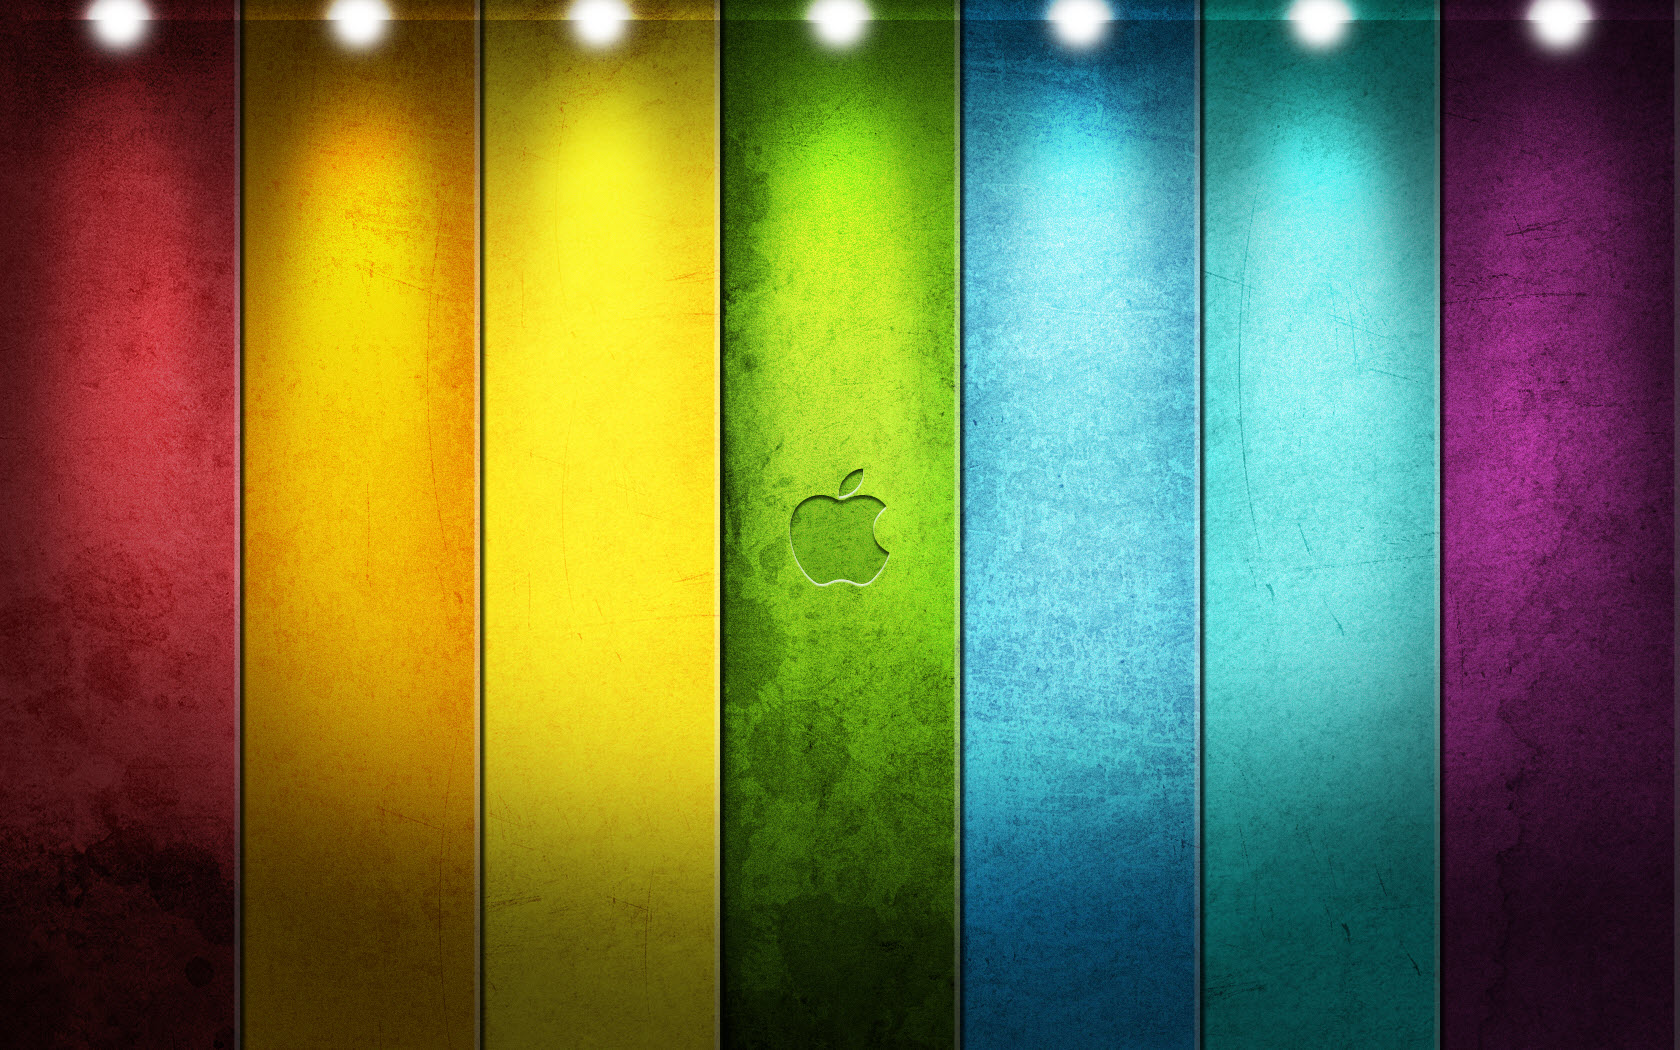 Apple Focus Colors Wallpapers HD Wallpapers 1680x1050